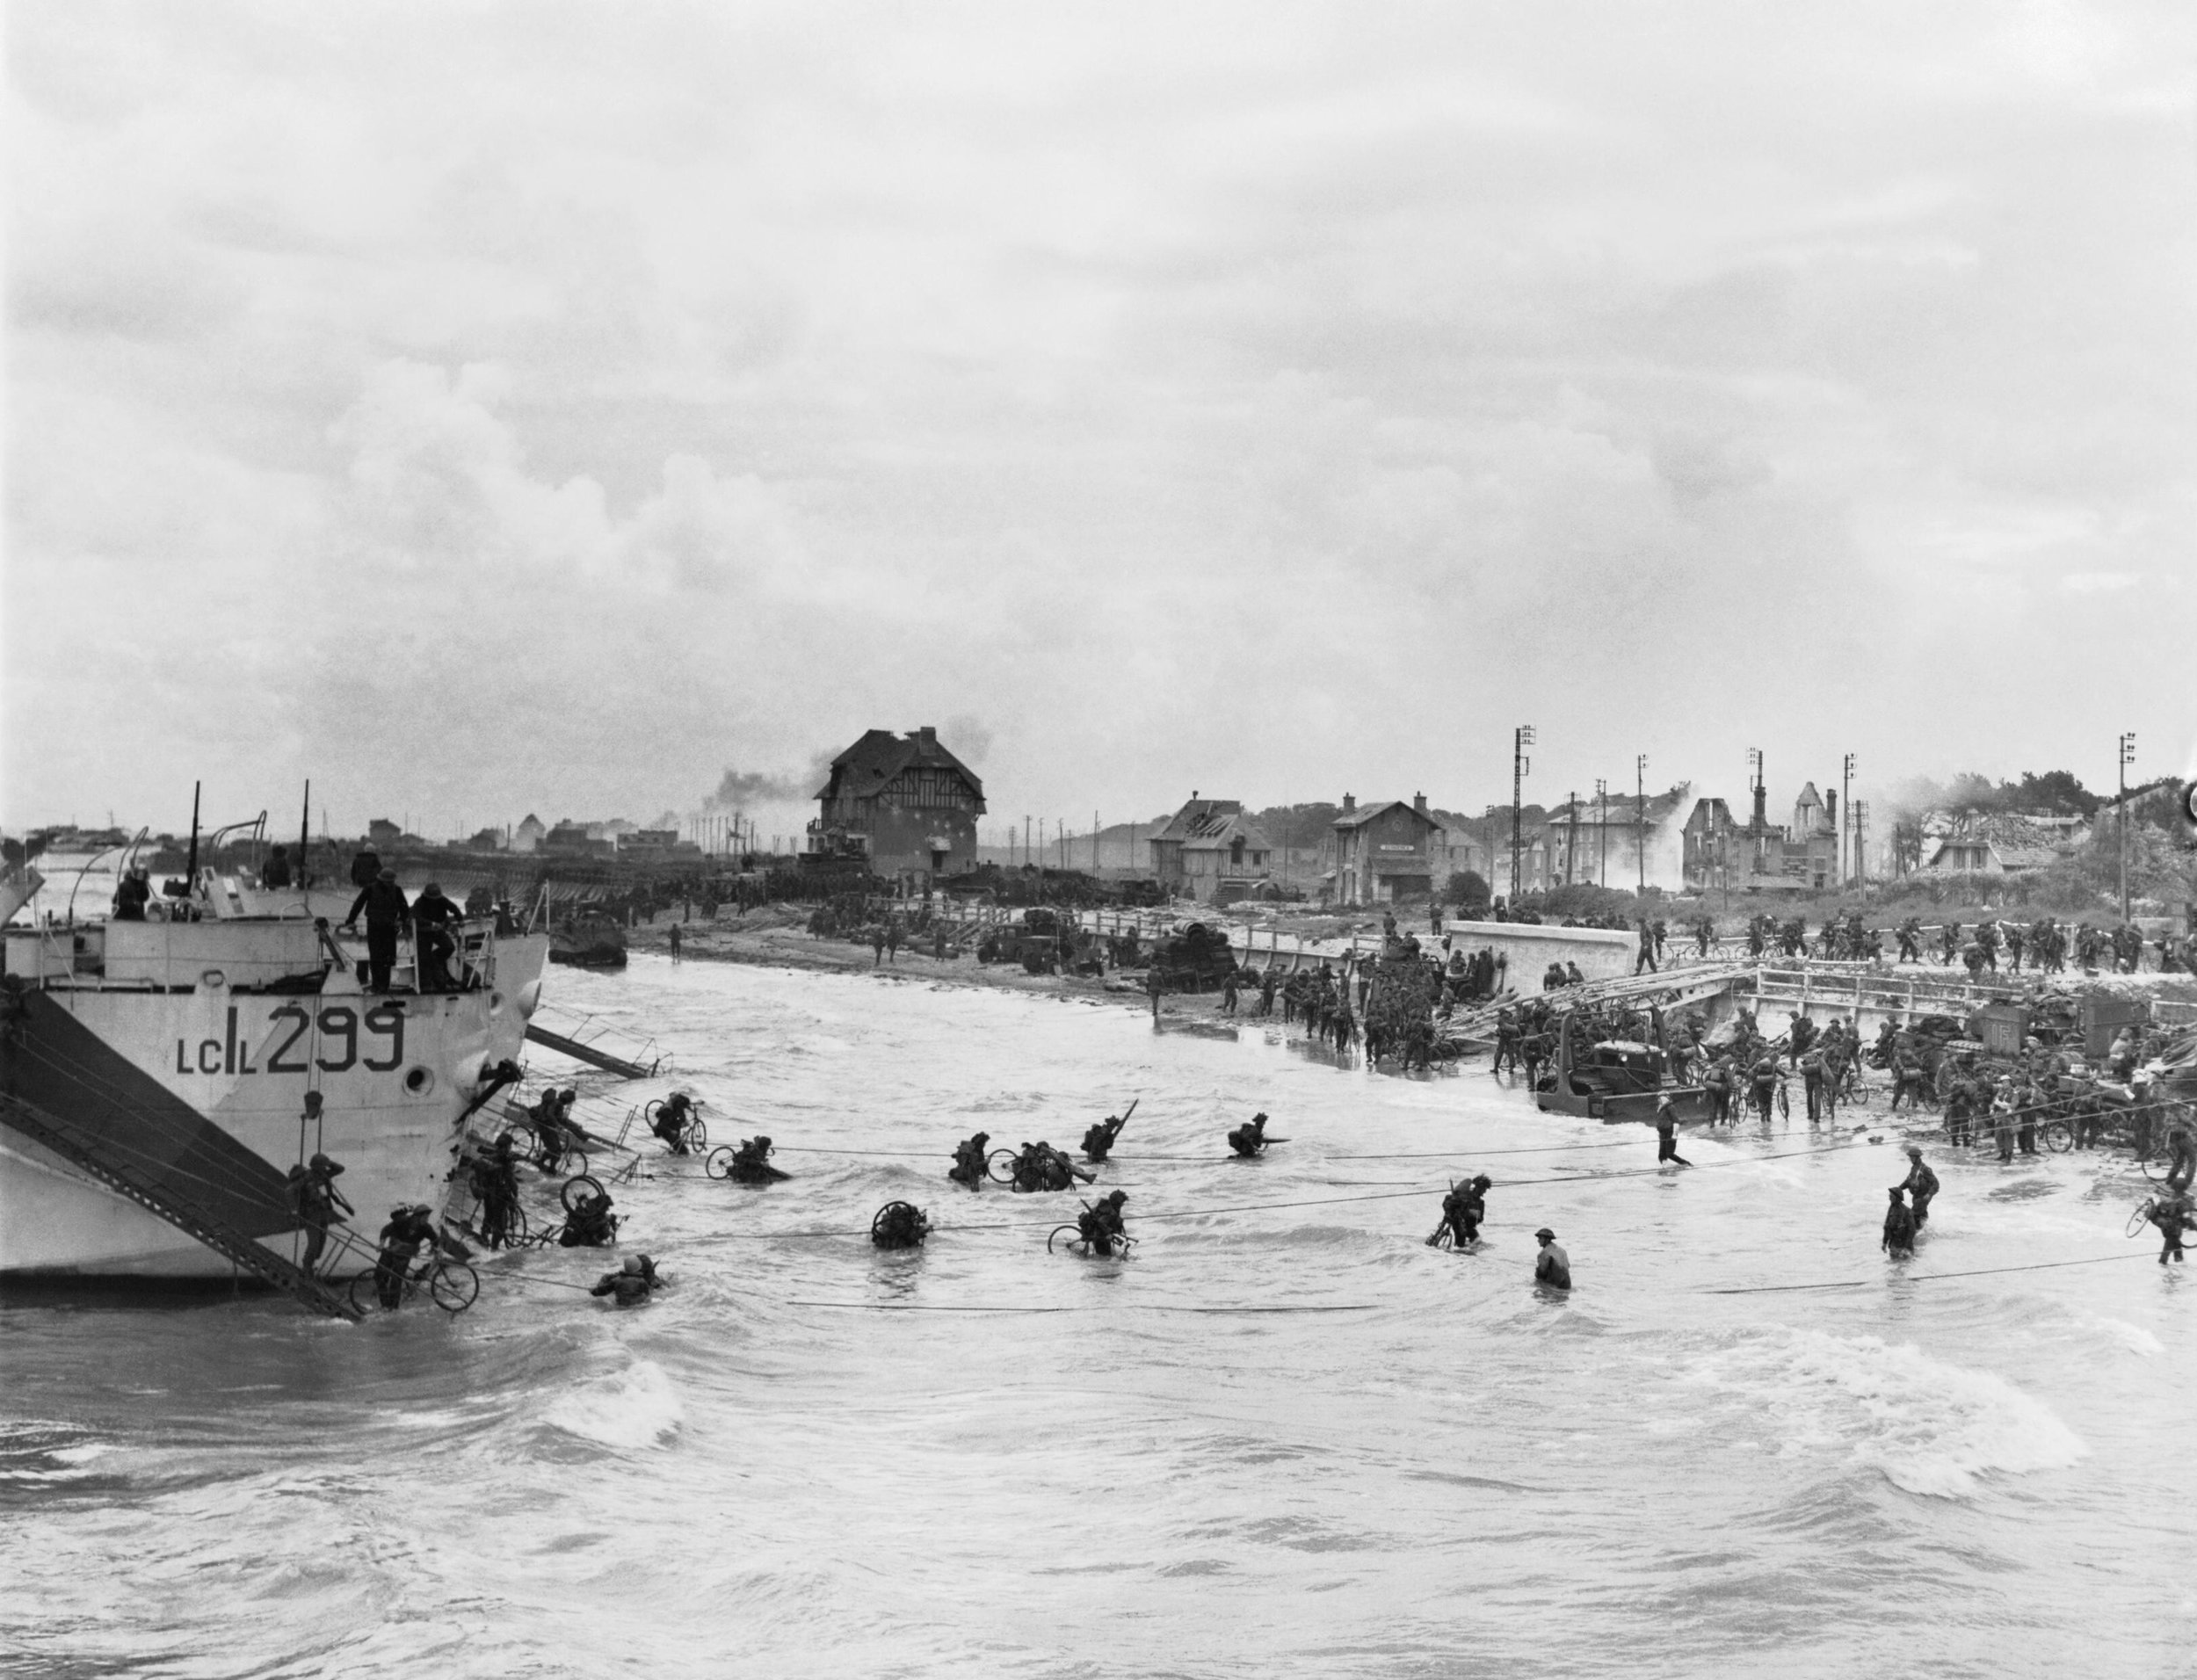 Follow-up waves of the 9th Canadian Infantry Brigade disembarking with bicycles from landing craft onto 'Nan White' sector of Juno Beach at Bernieres-sur-Mer, 6 June 1944